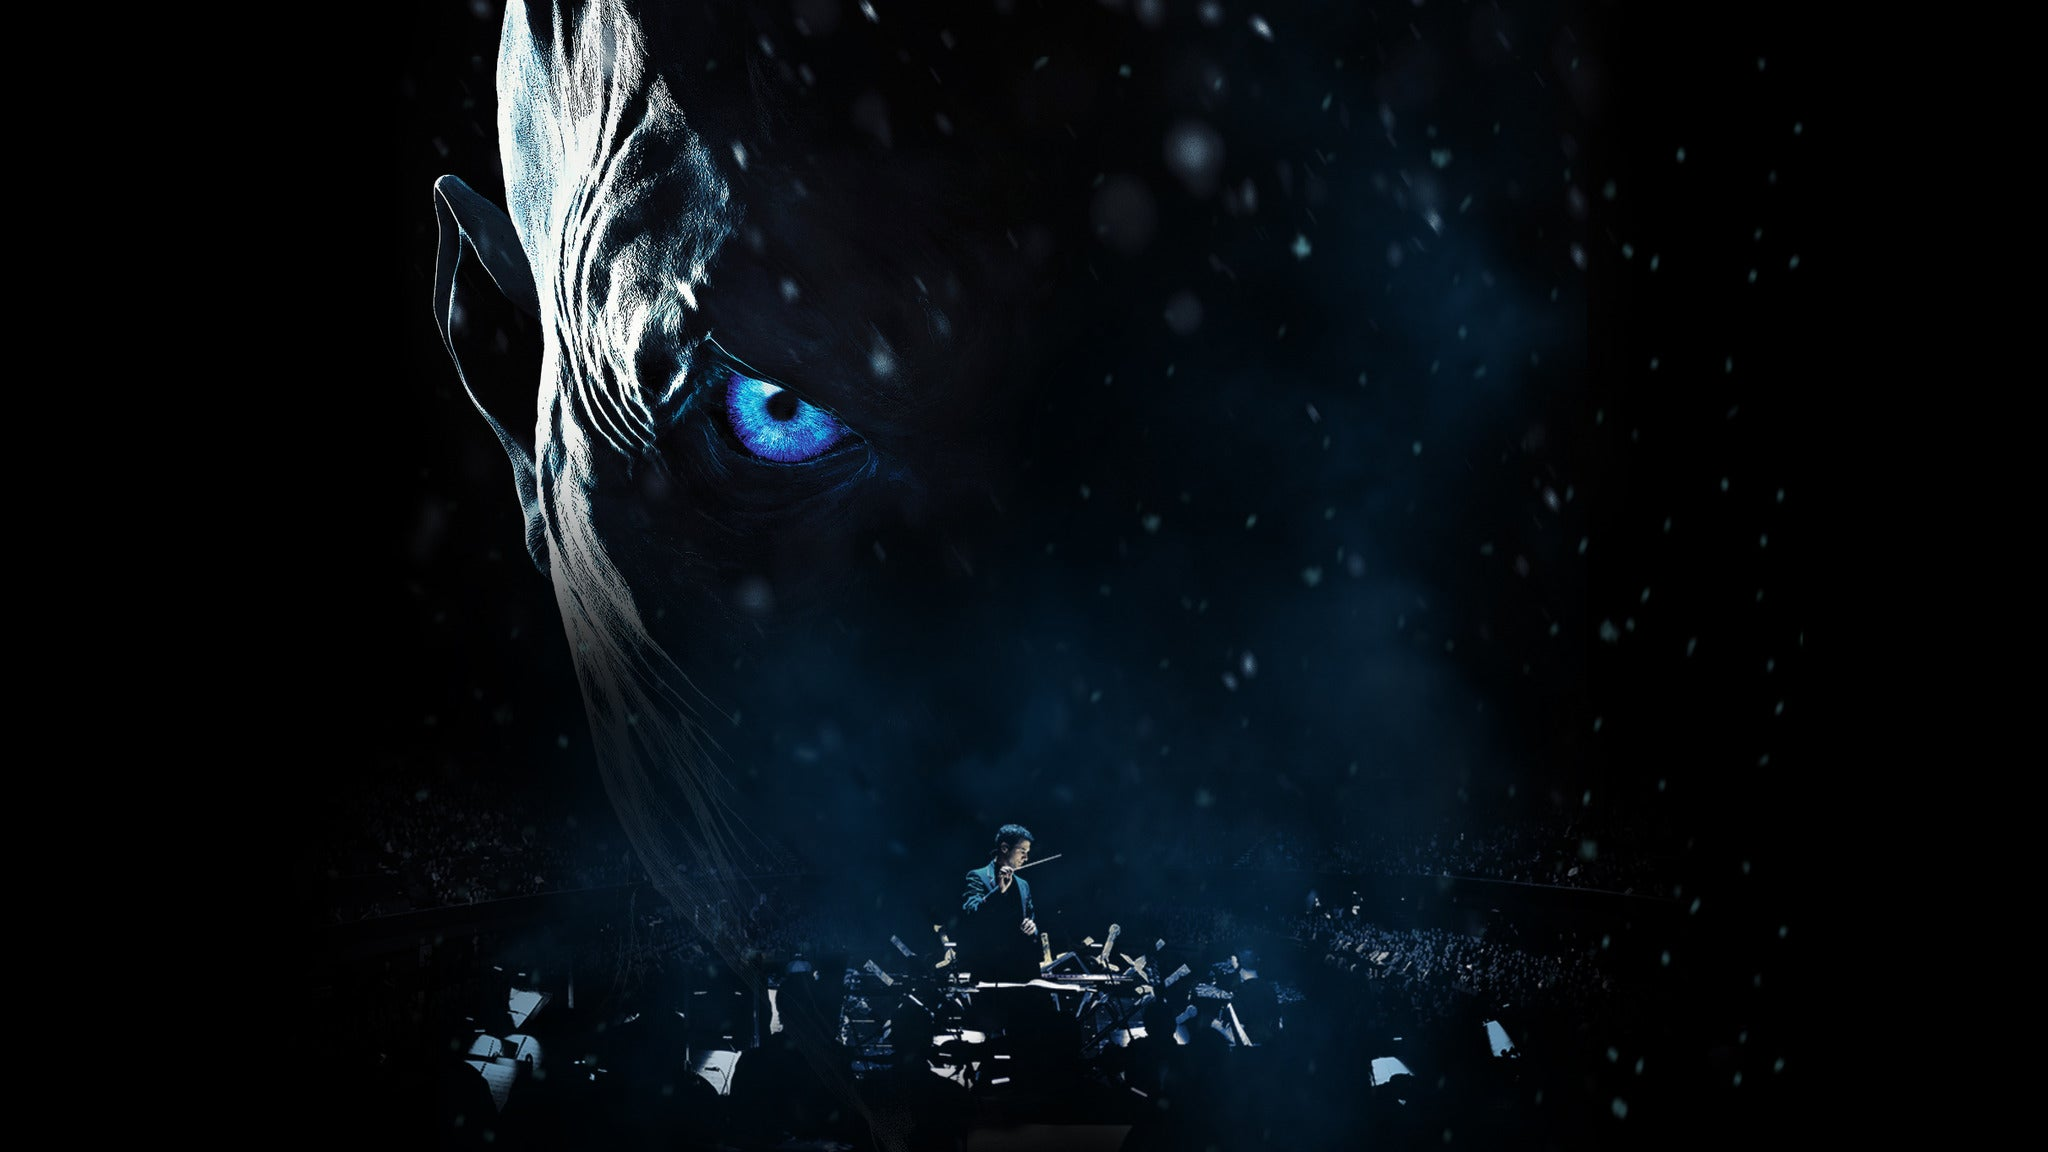 Game of Thrones Live Concert Experience at KeyArena